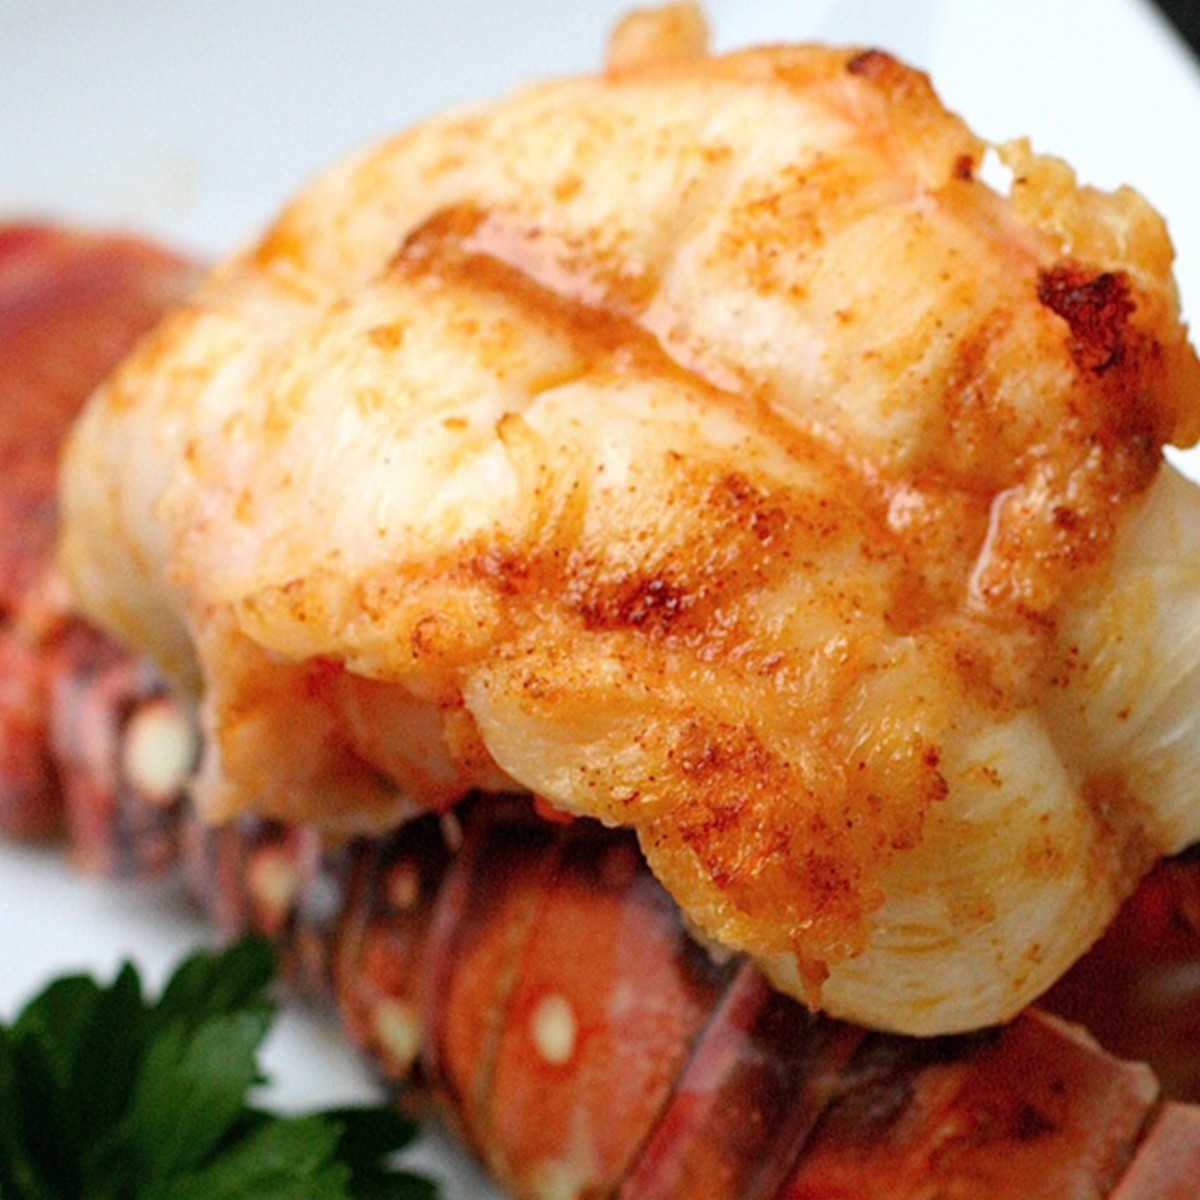 Lobster tail cooked closeup